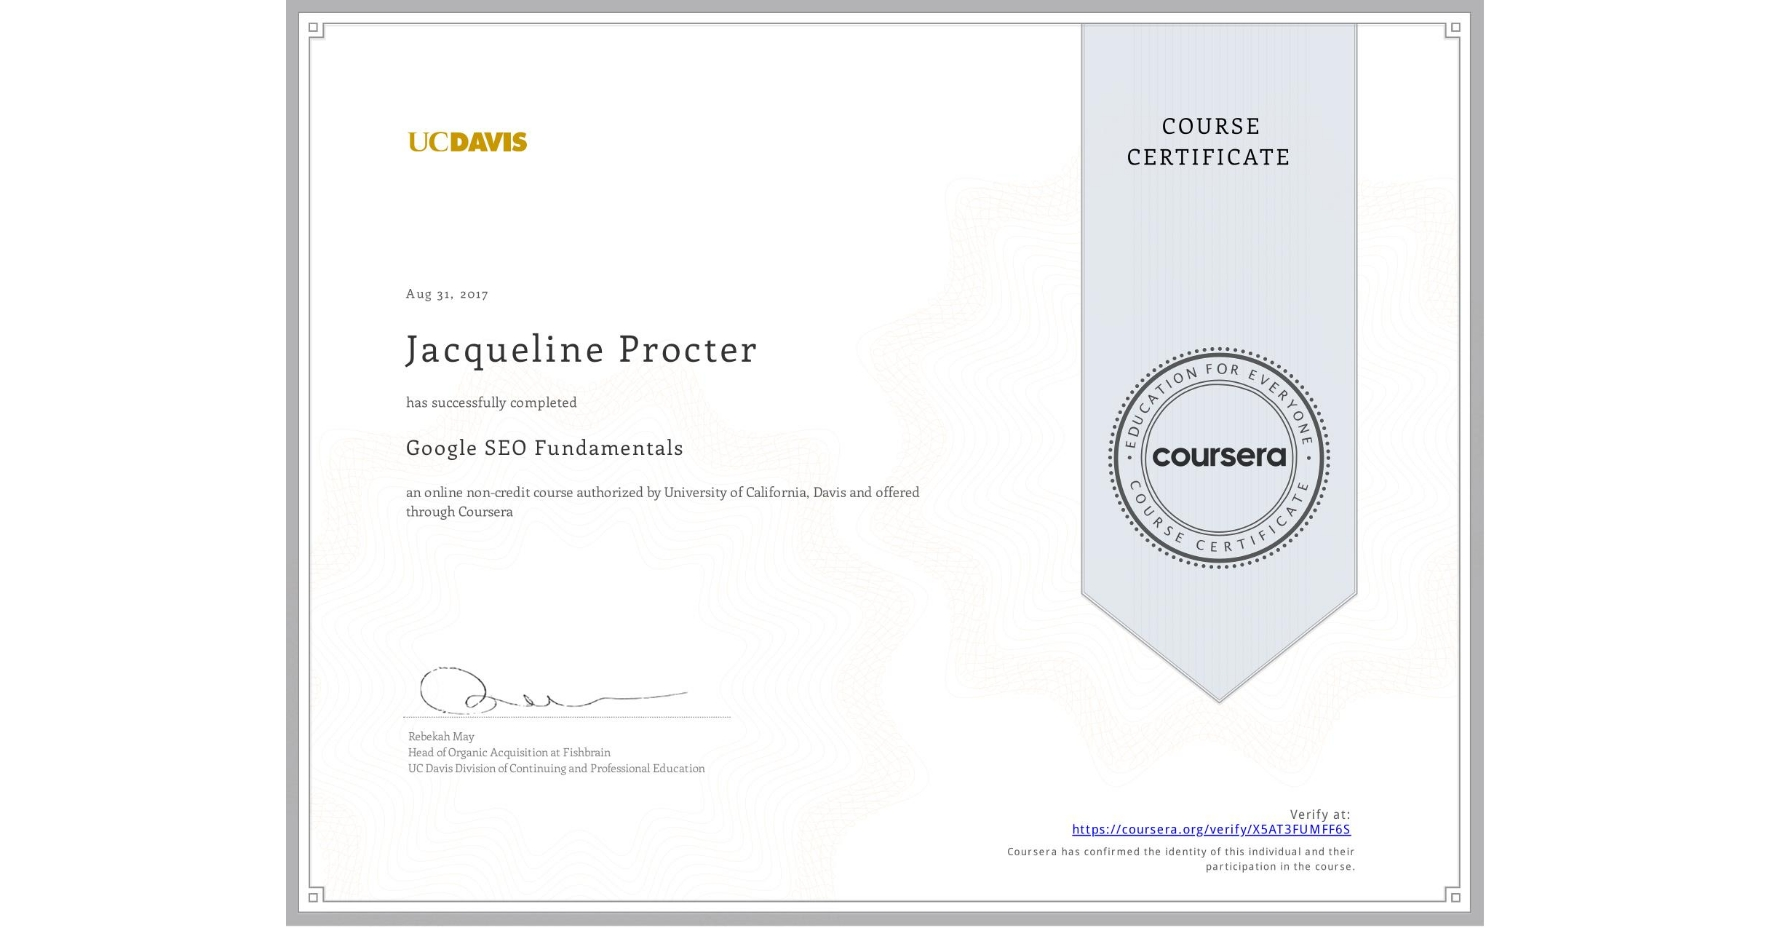 View certificate for Jacqueline Procter, Google SEO Fundamentals, an online non-credit course authorized by University of California, Davis and offered through Coursera